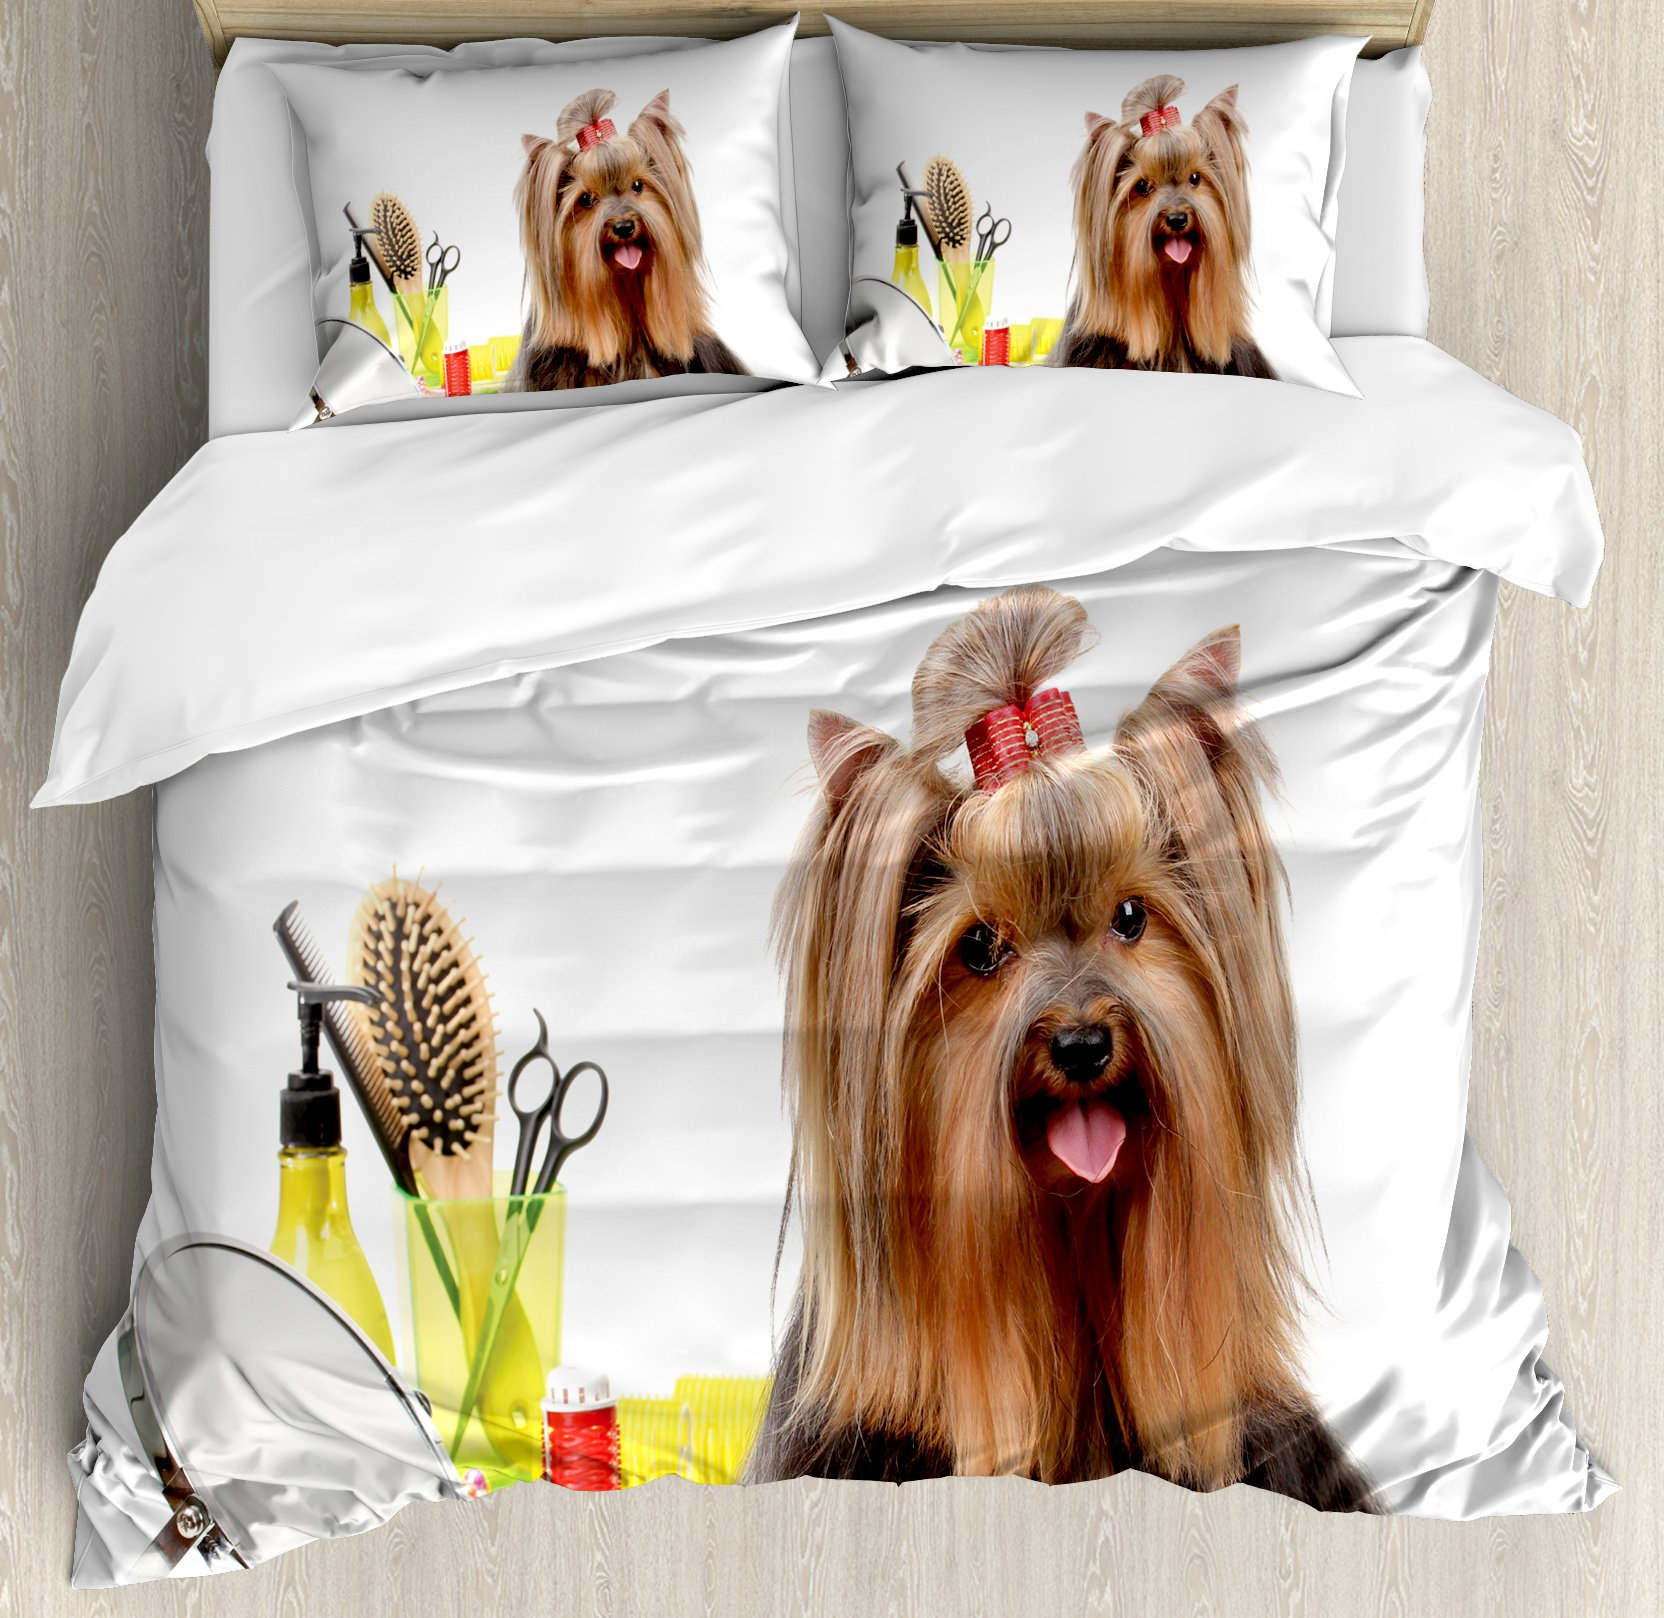 Yorkie Duvet Cover Set Queen Size by Ambesonne, Yorkshire Terrier with Stylish Hairdressing Equipment Mirror Scissors, Decorative 3 Piece Bedding Set with 2 Pillow Shams, Dark Brown Multicolor